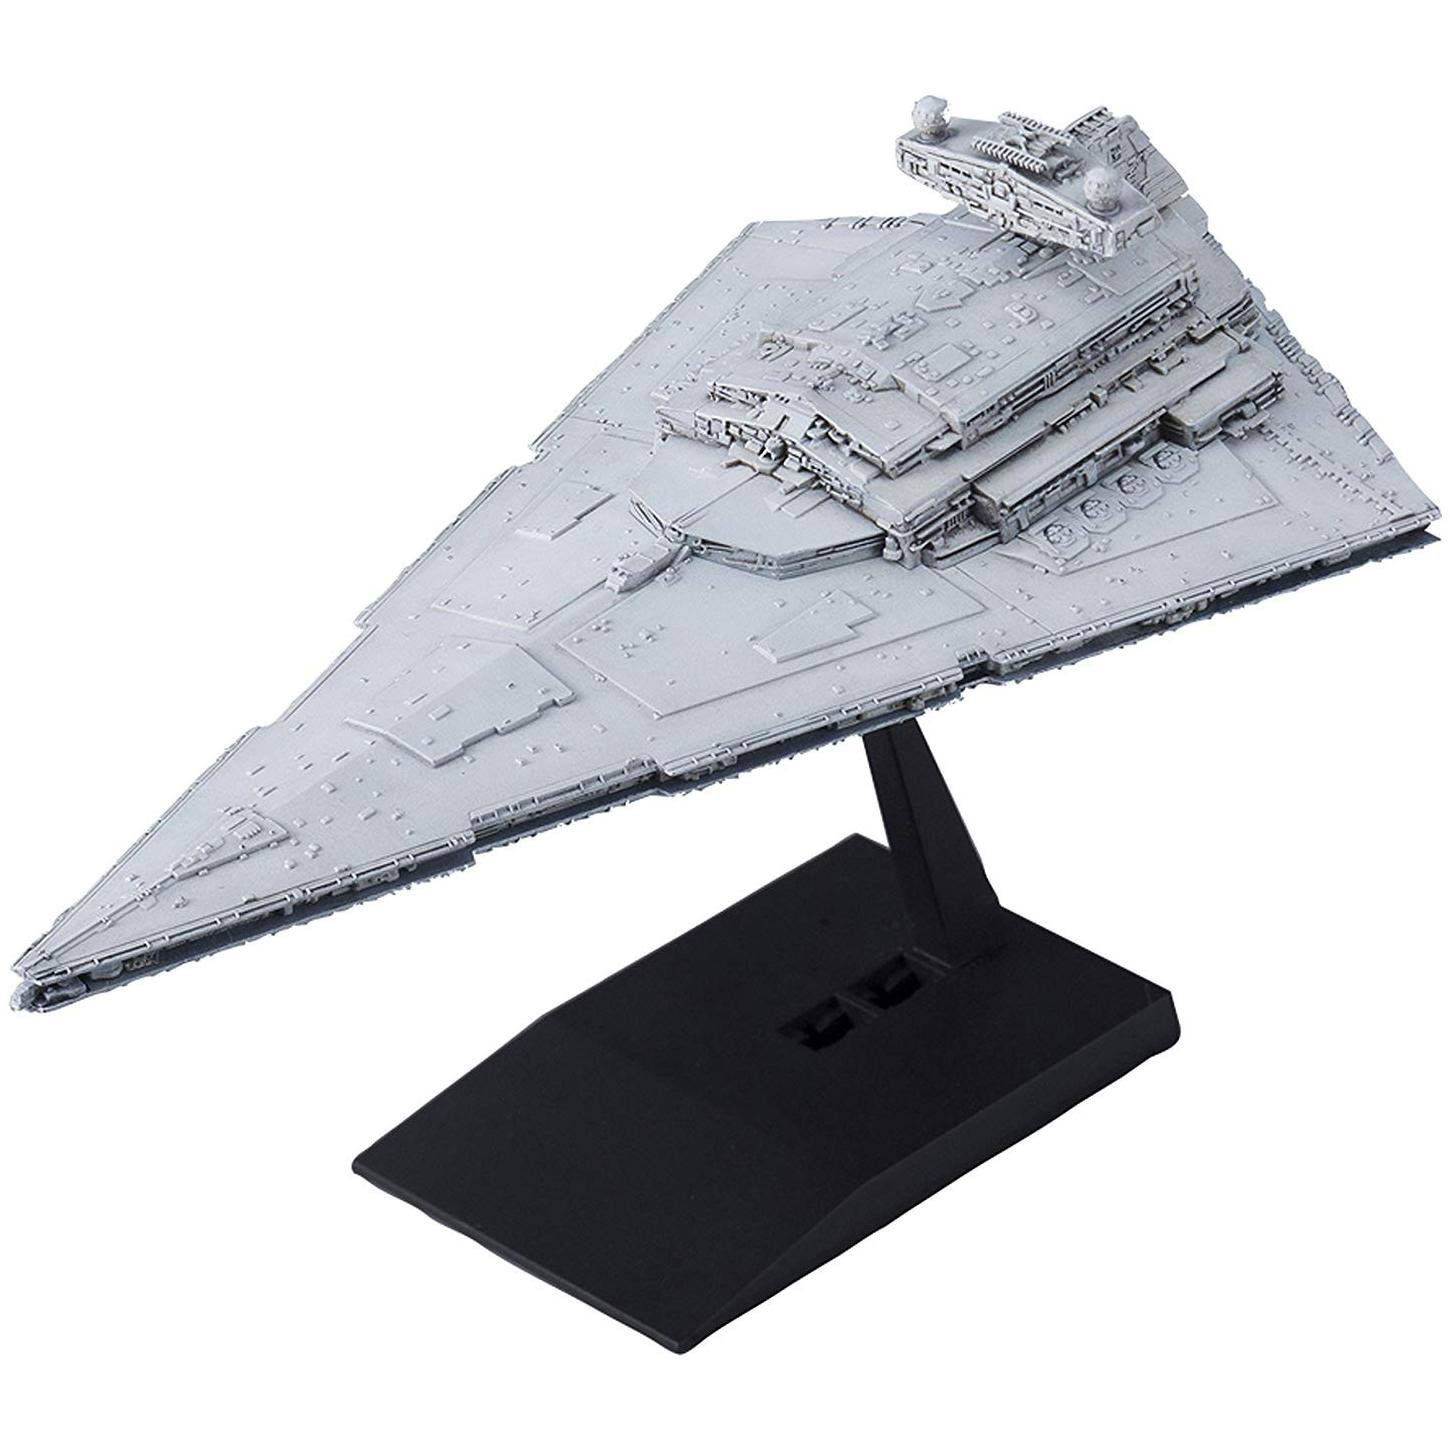 Bandai Vehicle Model 001 Star Wars Star Destroyer Plastic Model Kit